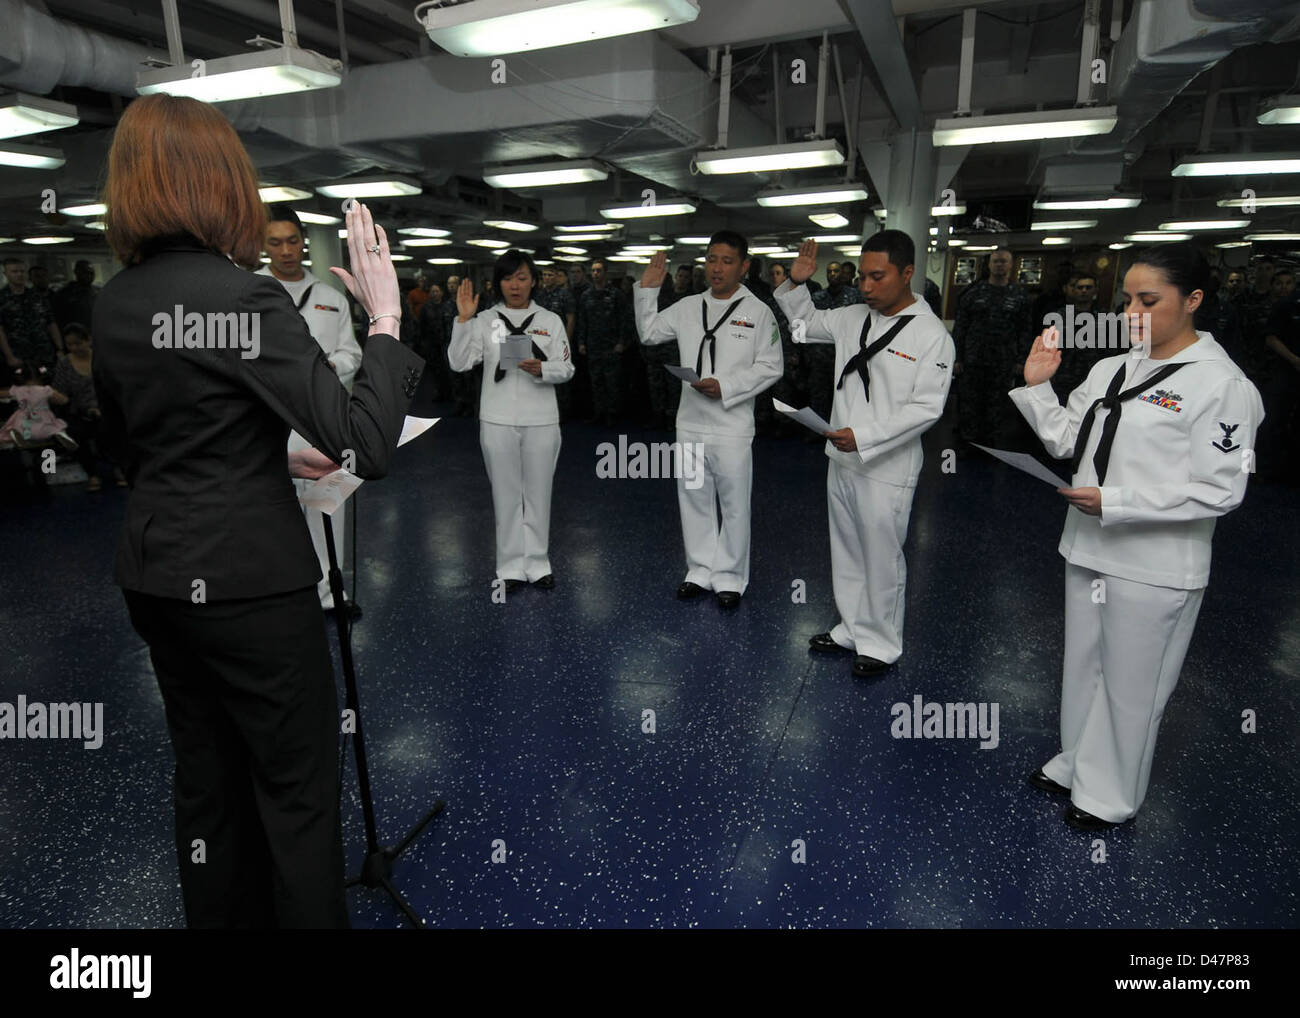 a united states department of homeland security immigration a united states department of homeland security immigration services officer issues the oath of citizenship to sailors